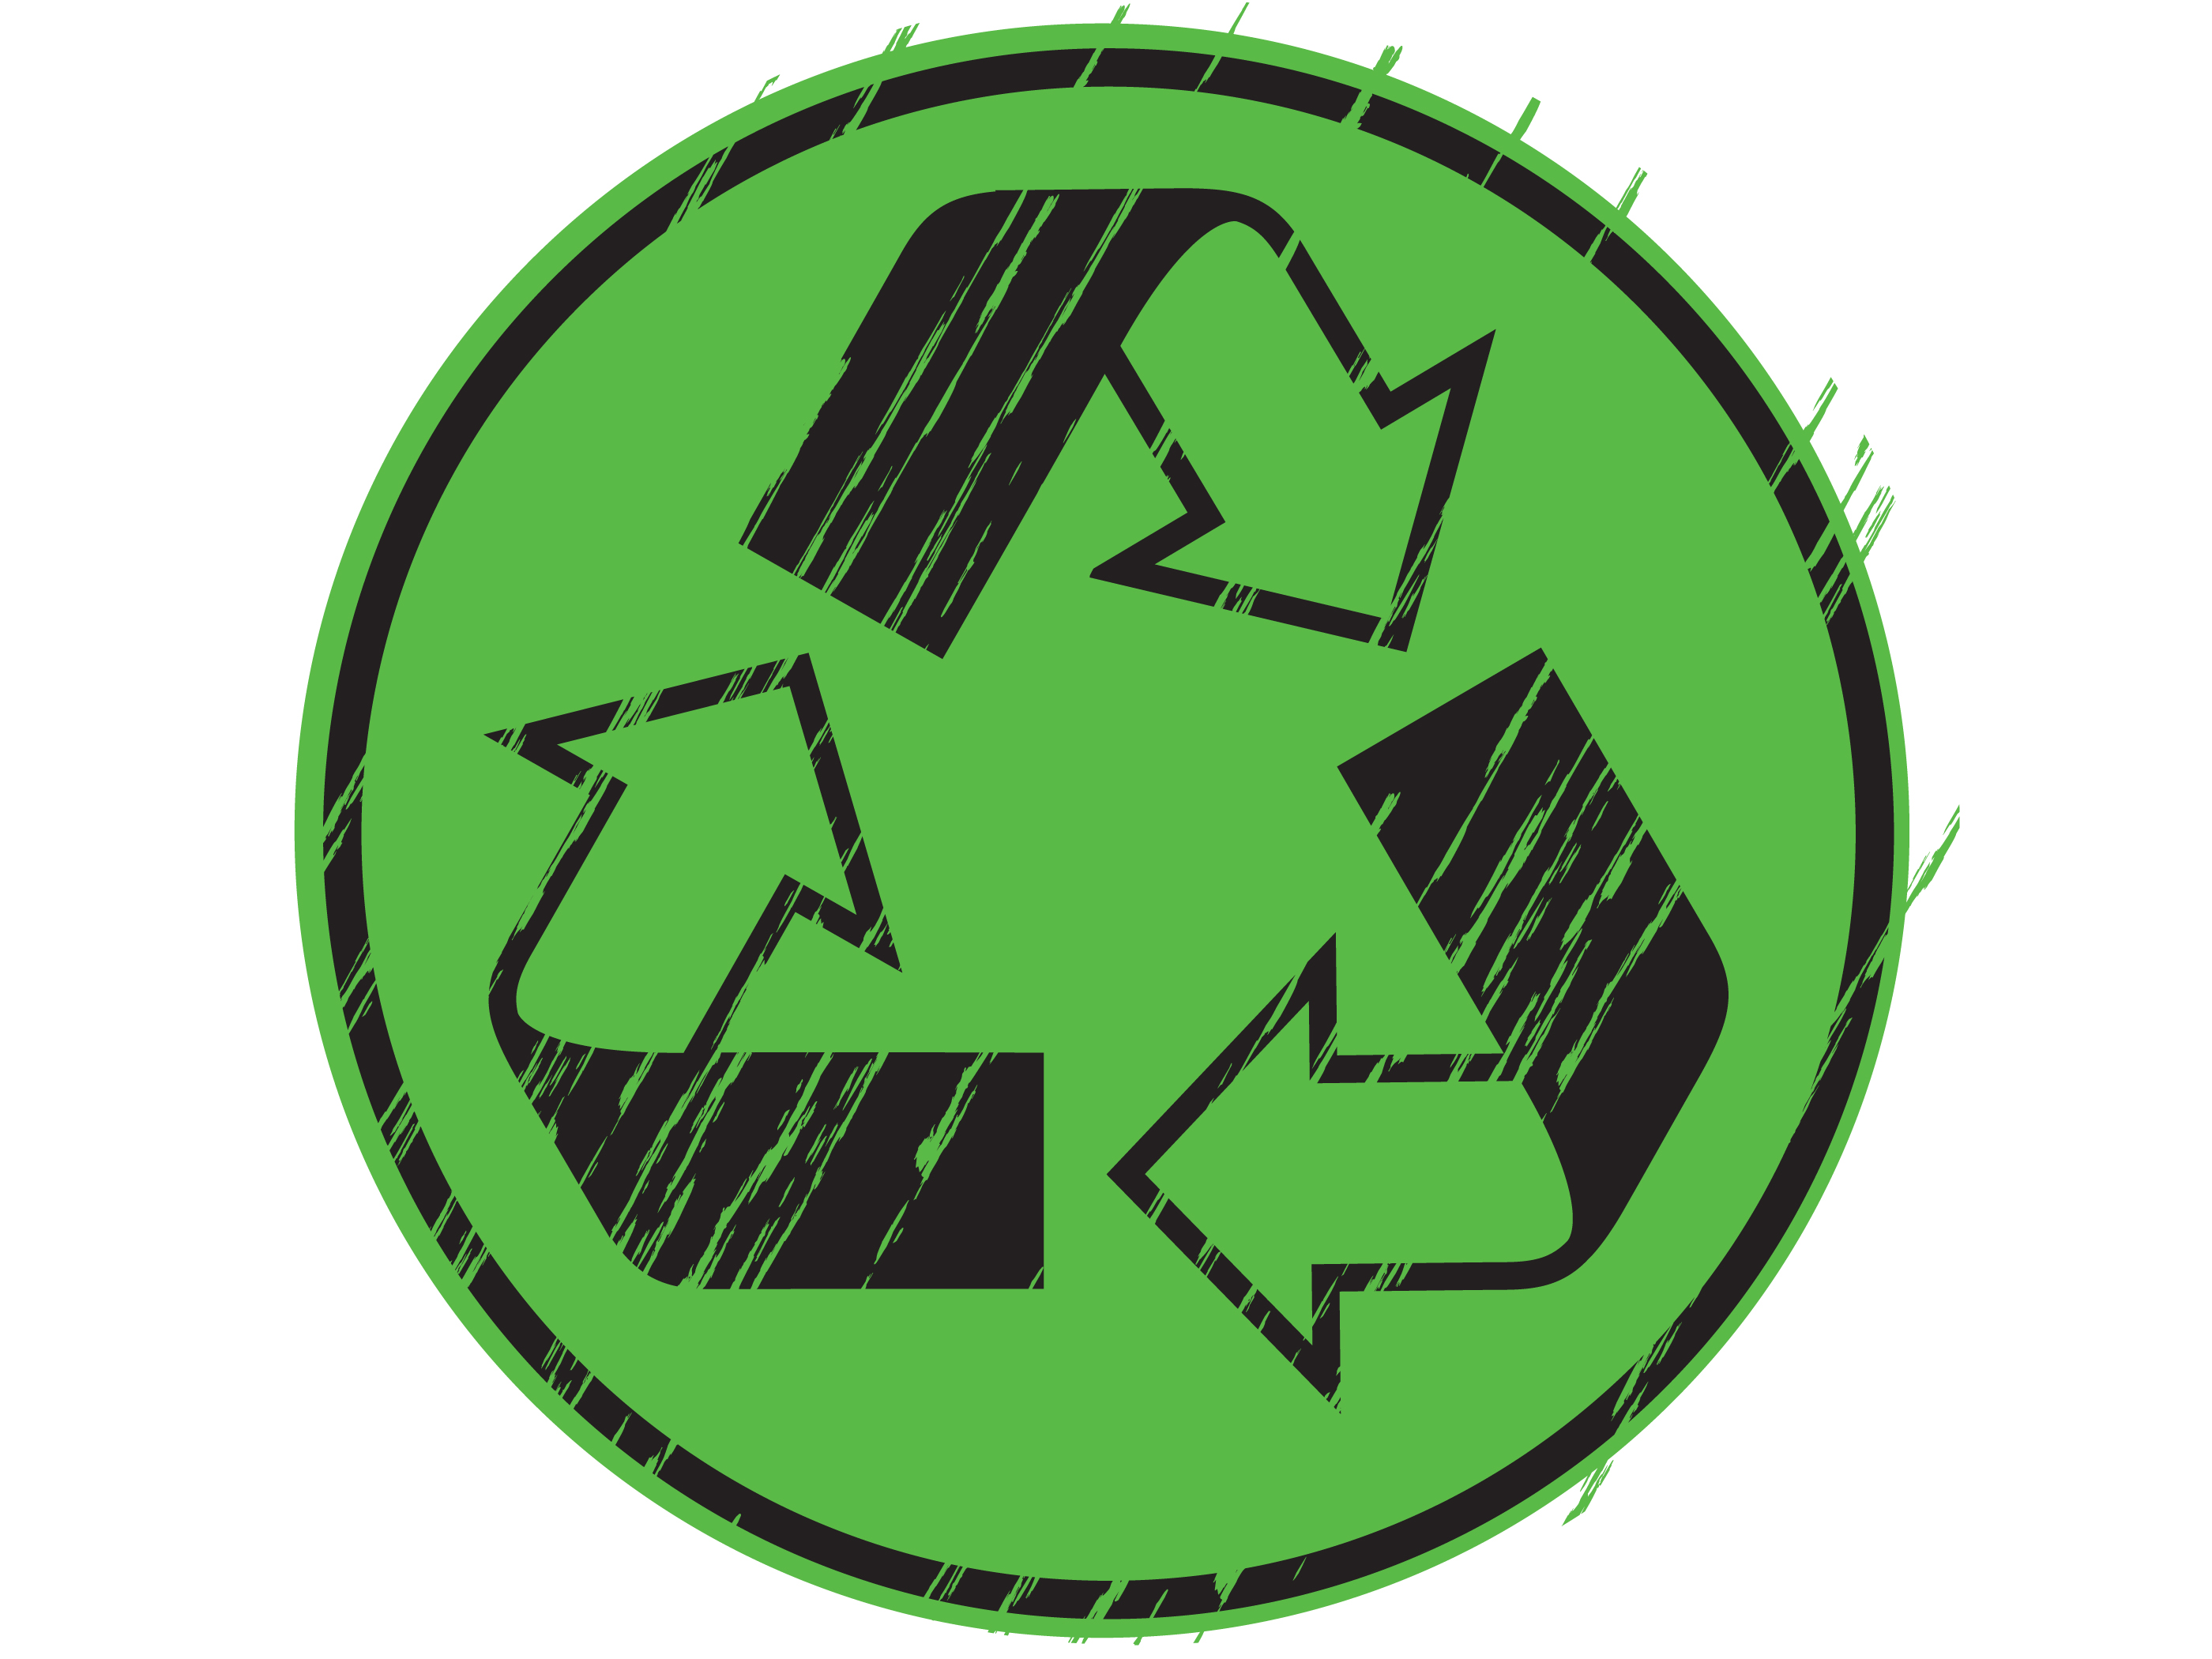 Reduce Reuse Recycle - Cliparts.co